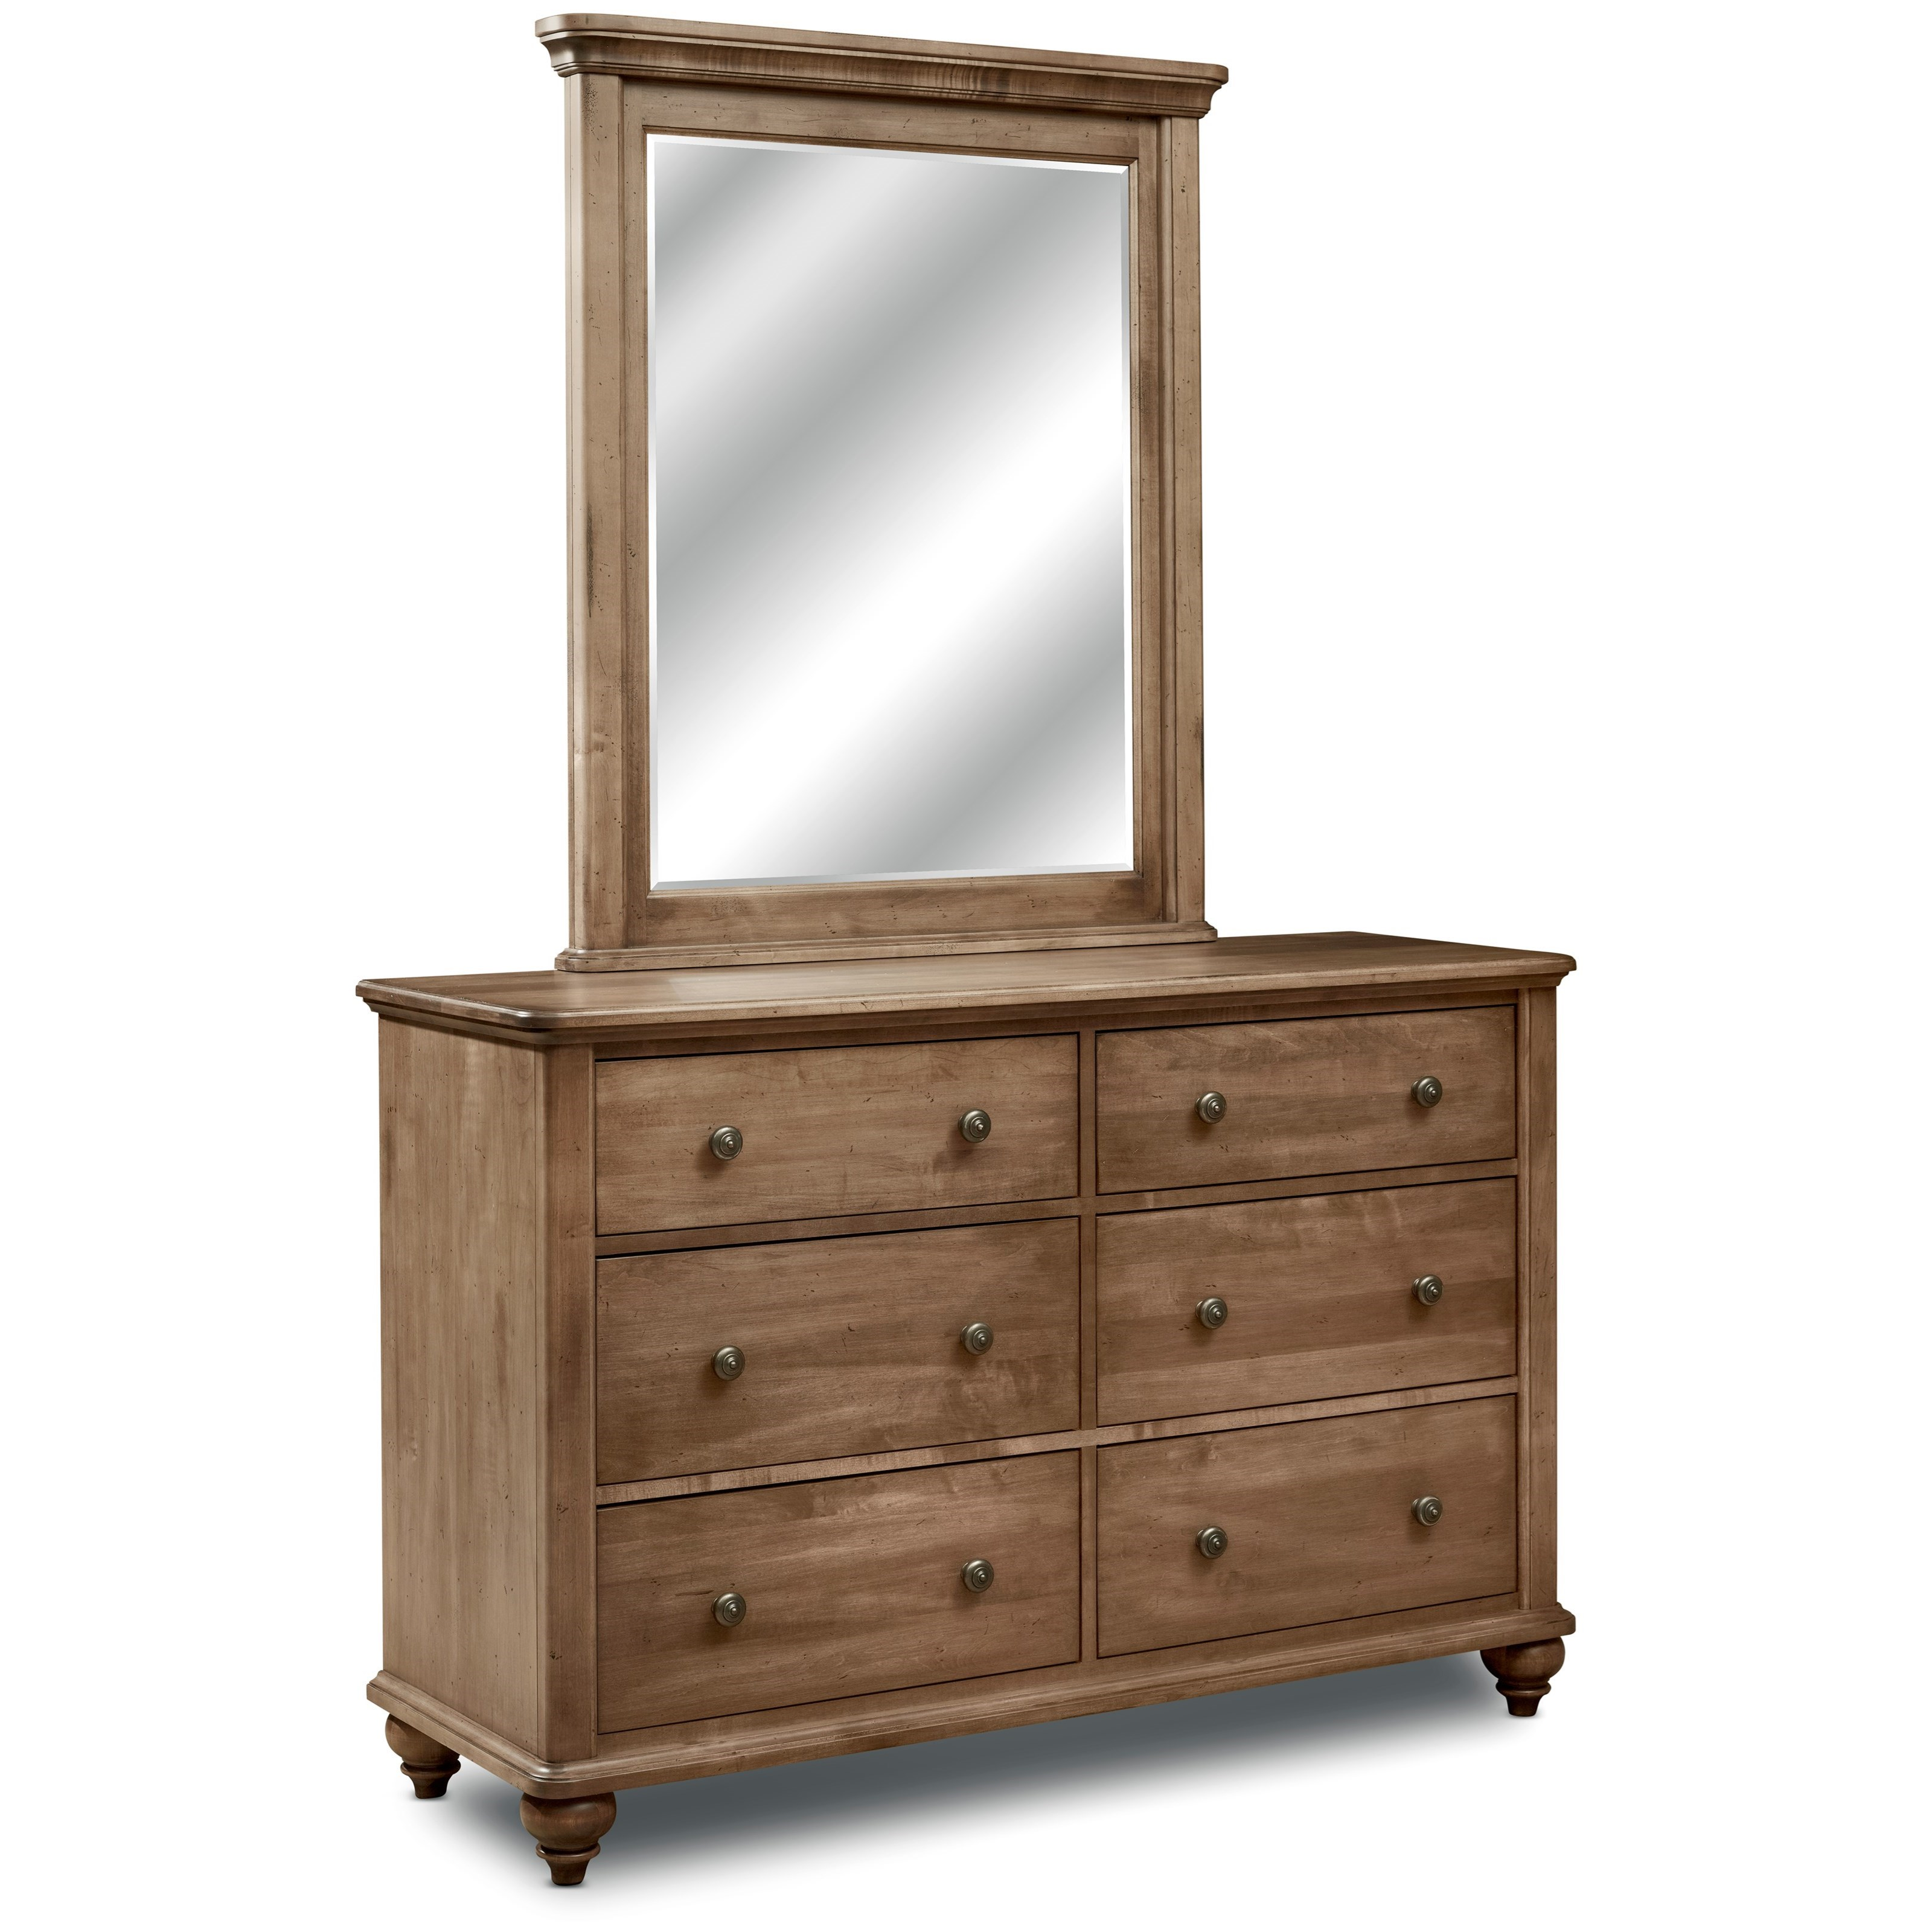 Millcroft Double Dresser and Mirror Set by perfectbalance by Durham Furniture at Stoney Creek Furniture